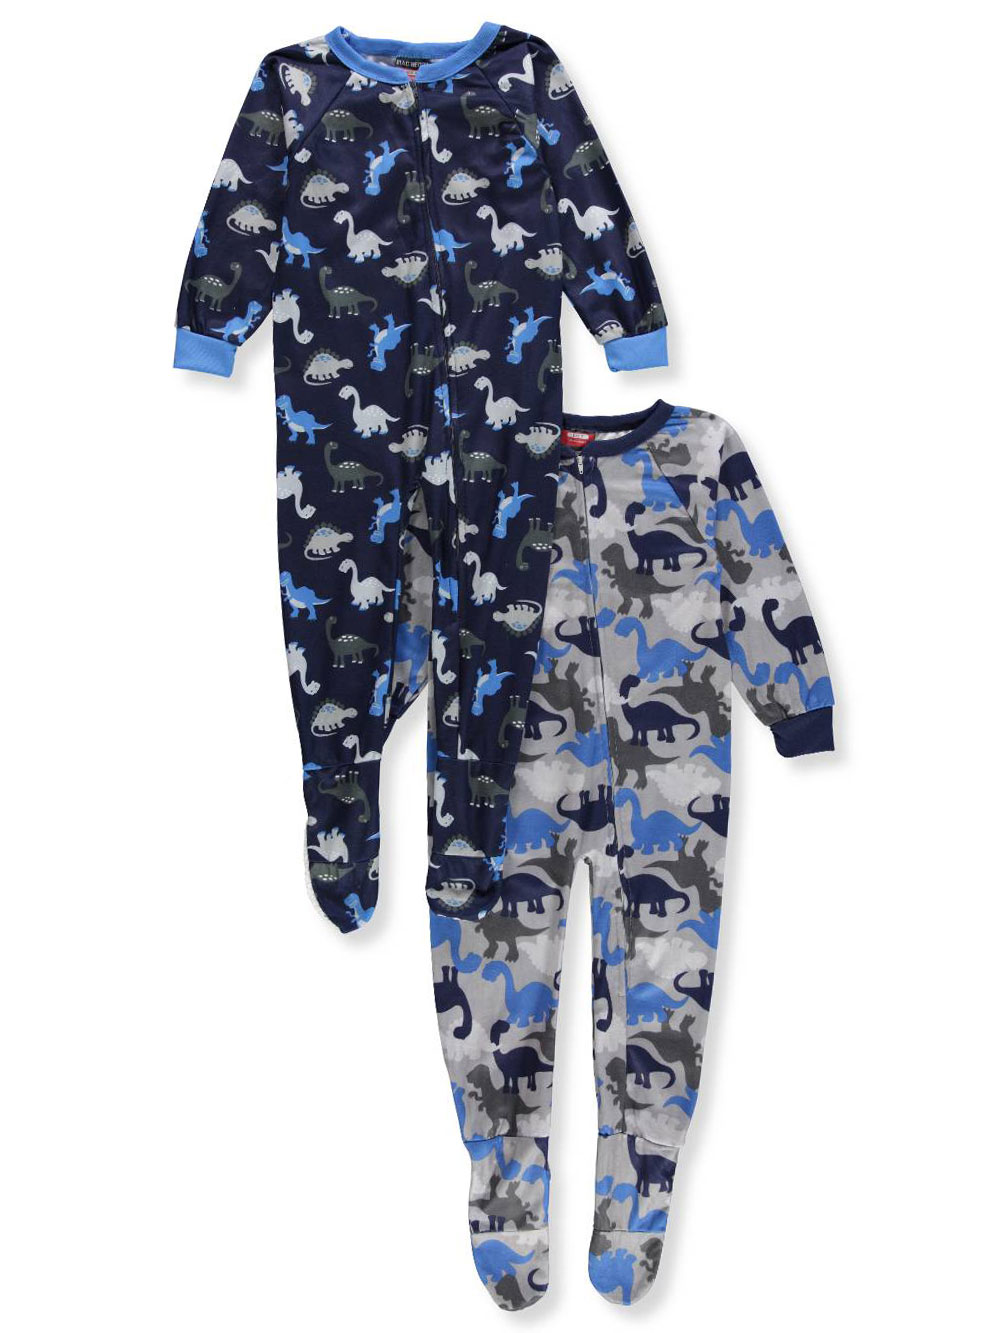 7c89d03baa Mac Henry Boys  2-Pack 1-Piece Footed Pajamas